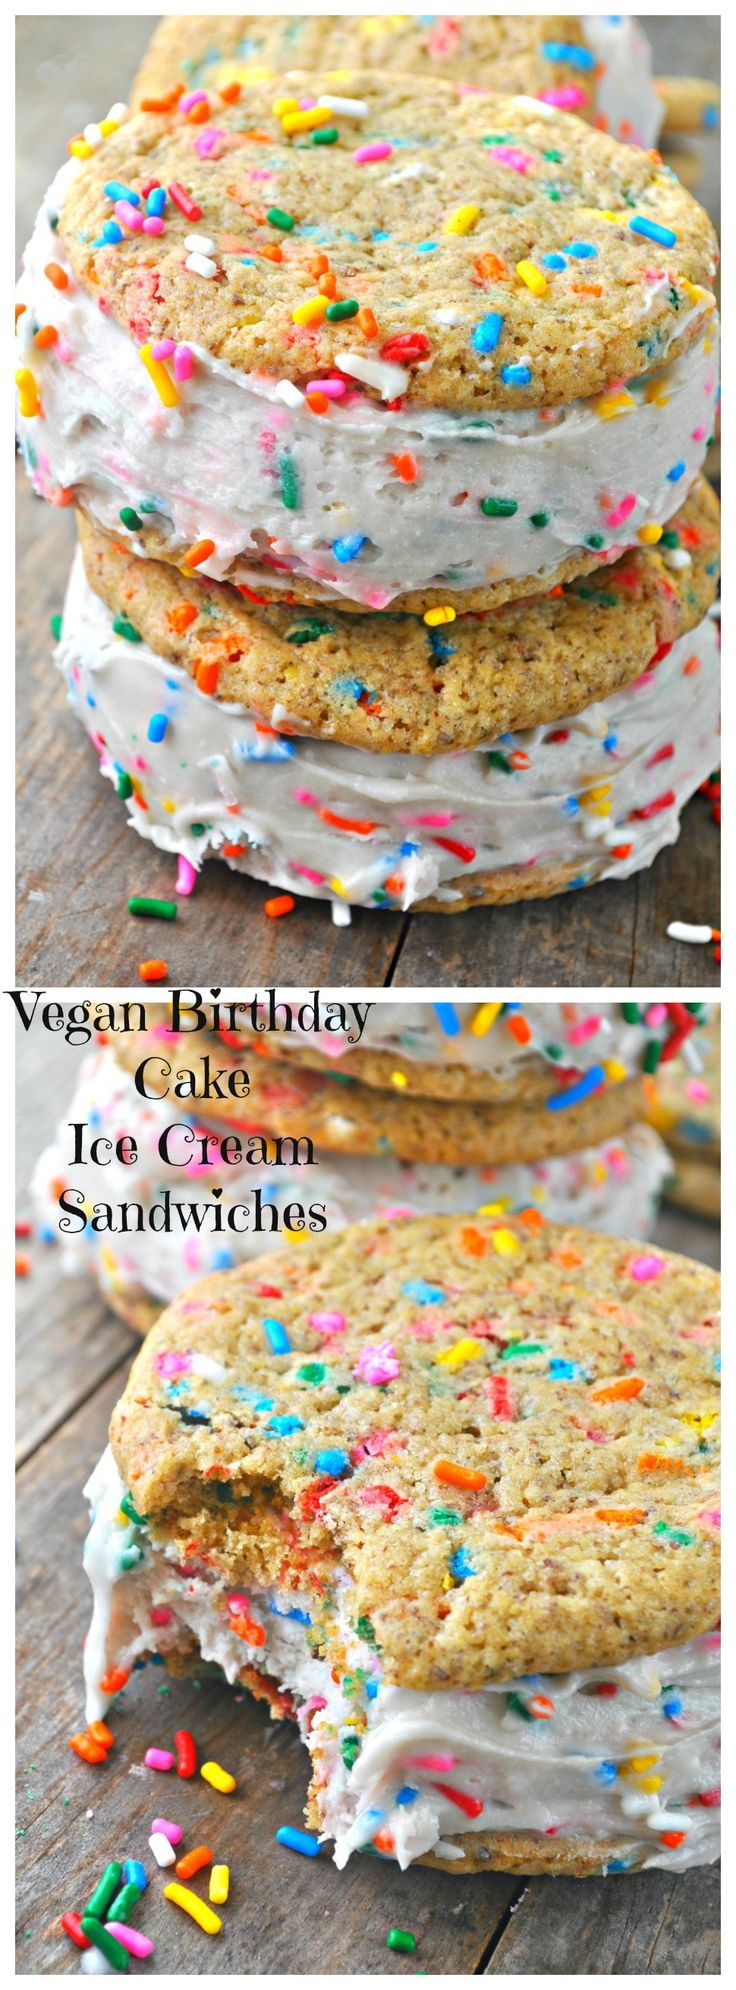 Vegan Birthday Cake Ice Cream Sandwiches